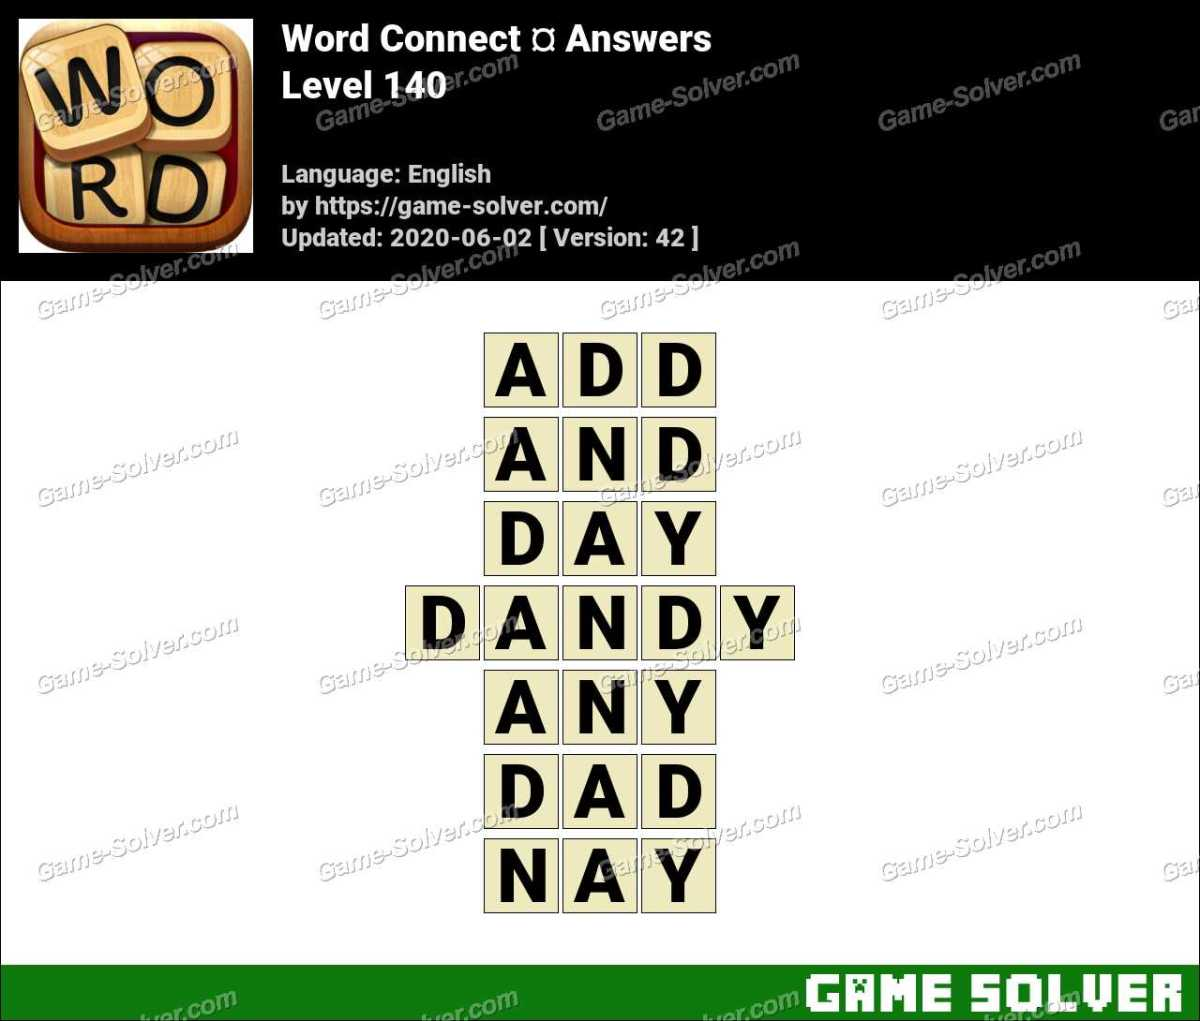 Word Connect Level 140 Answers